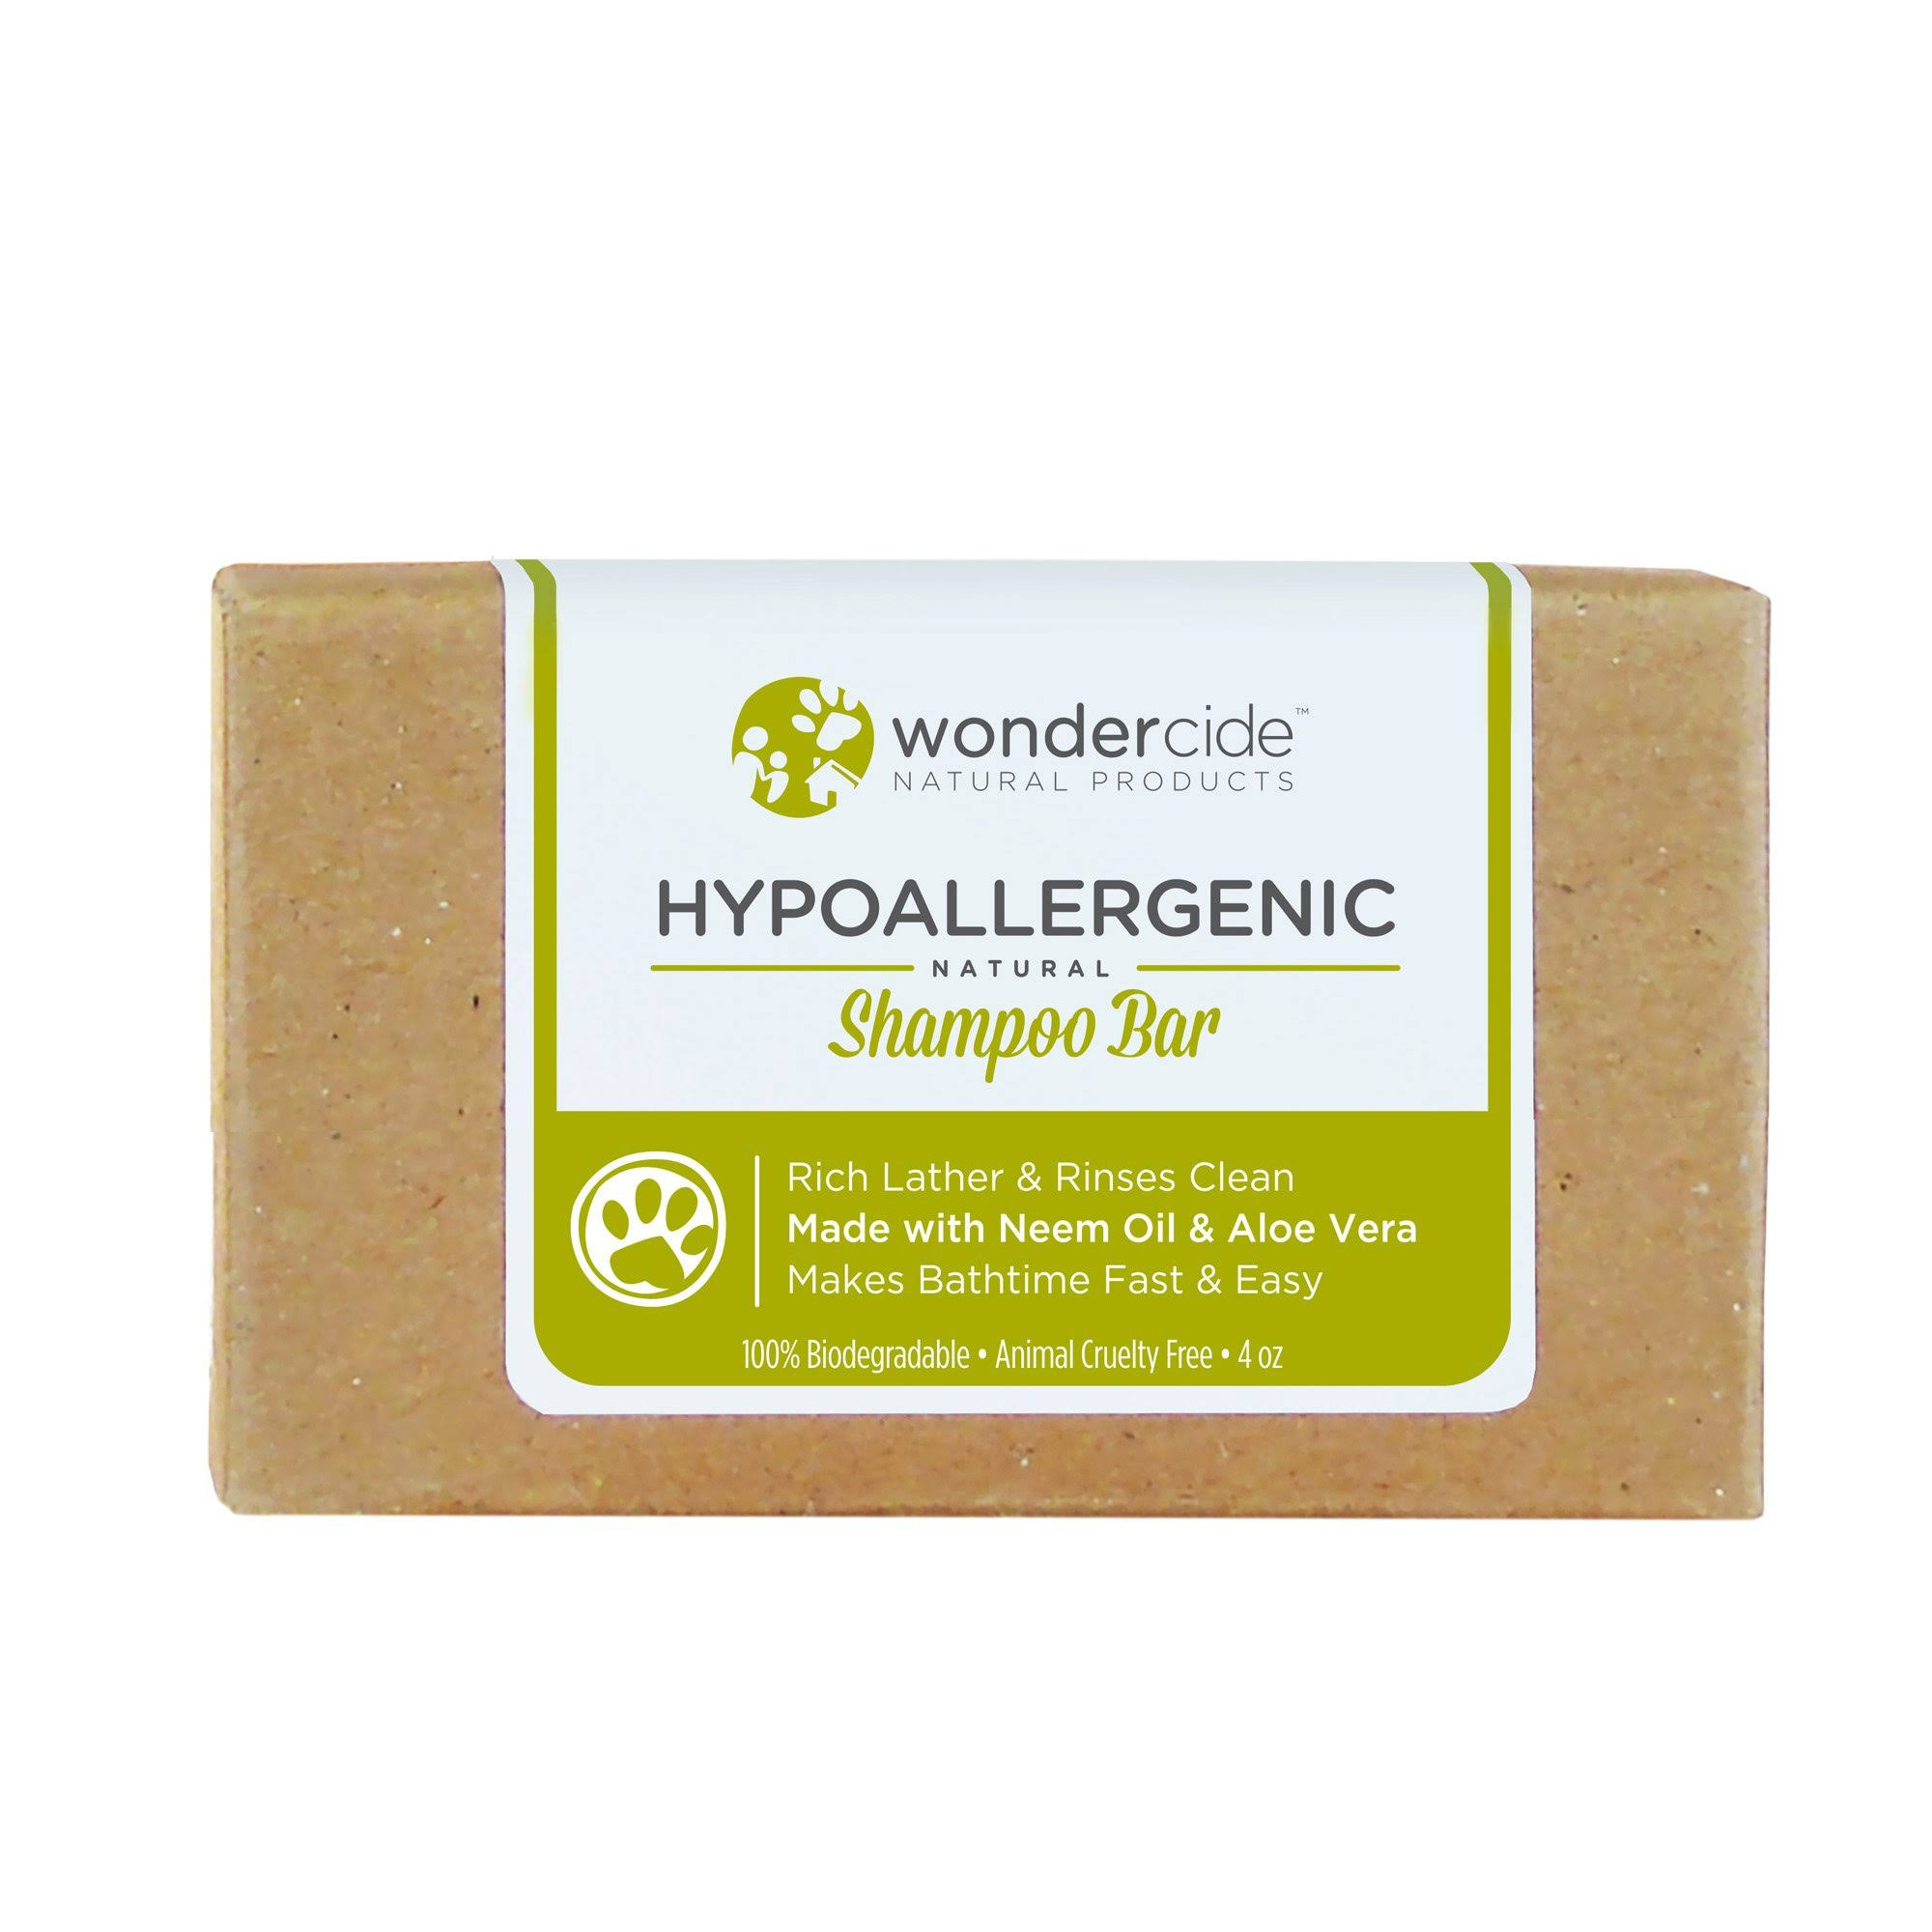 Wondercide Natural Pet Shampoo Bar - 4.3oz